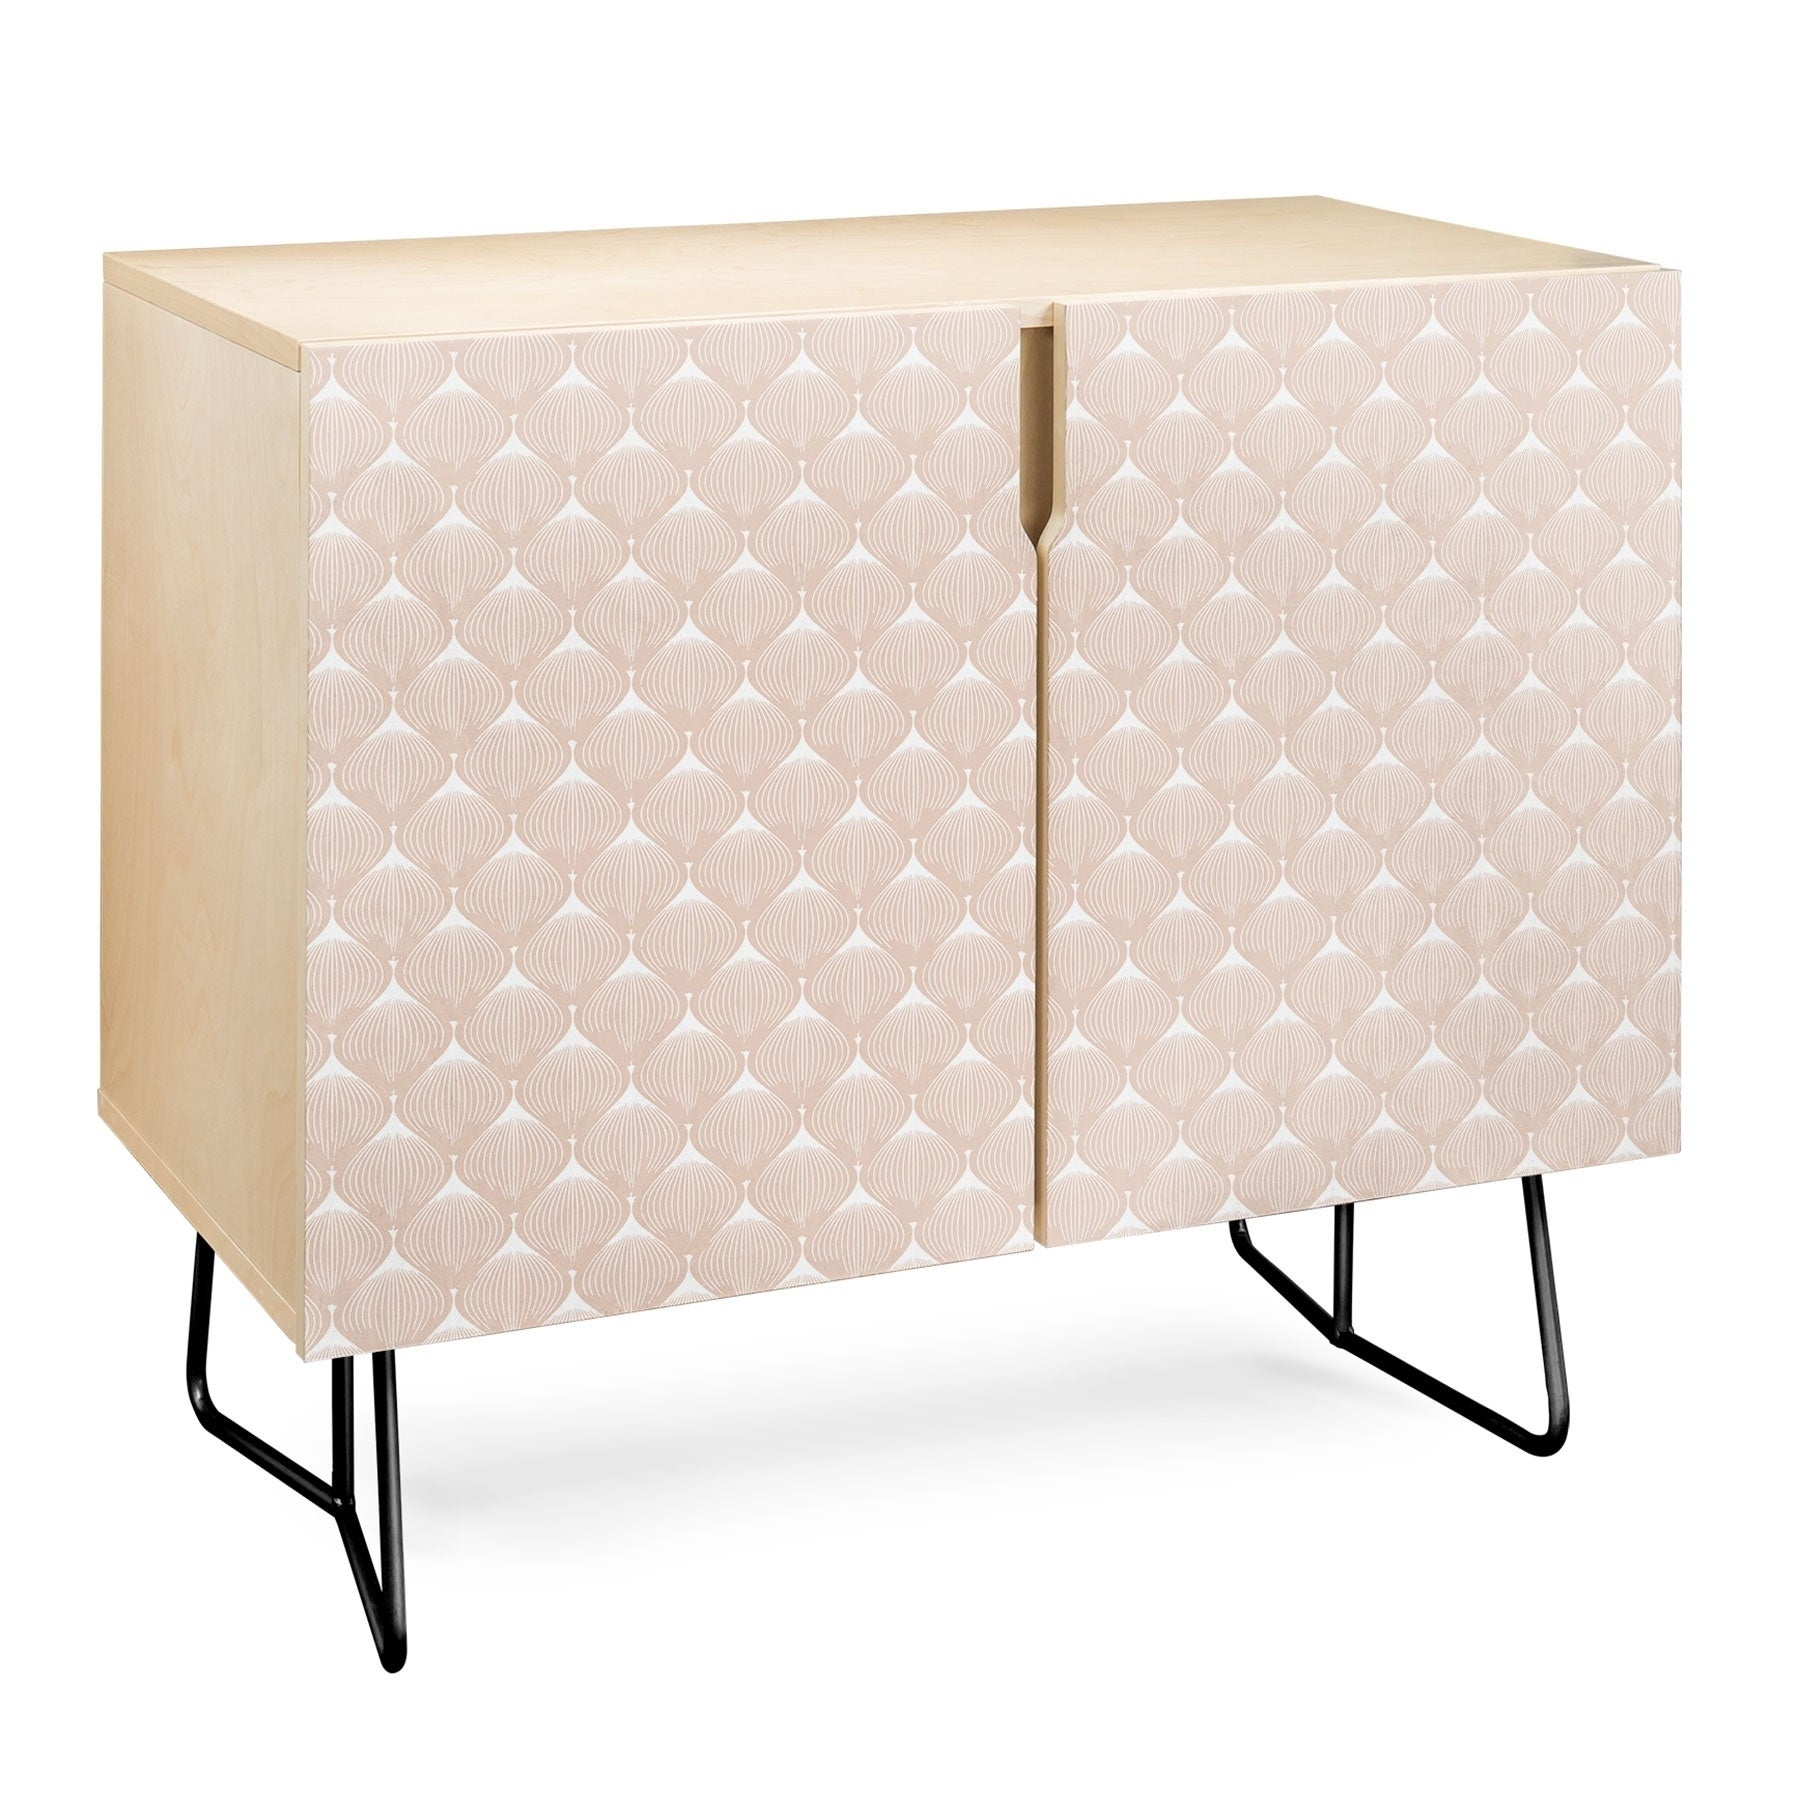 Deny Designs Pale Pink Bulbs Credenza (Birch Or Walnut, 2 Leg Options) Throughout Pale Pink Bulbs Credenzas (Photo 4 of 30)